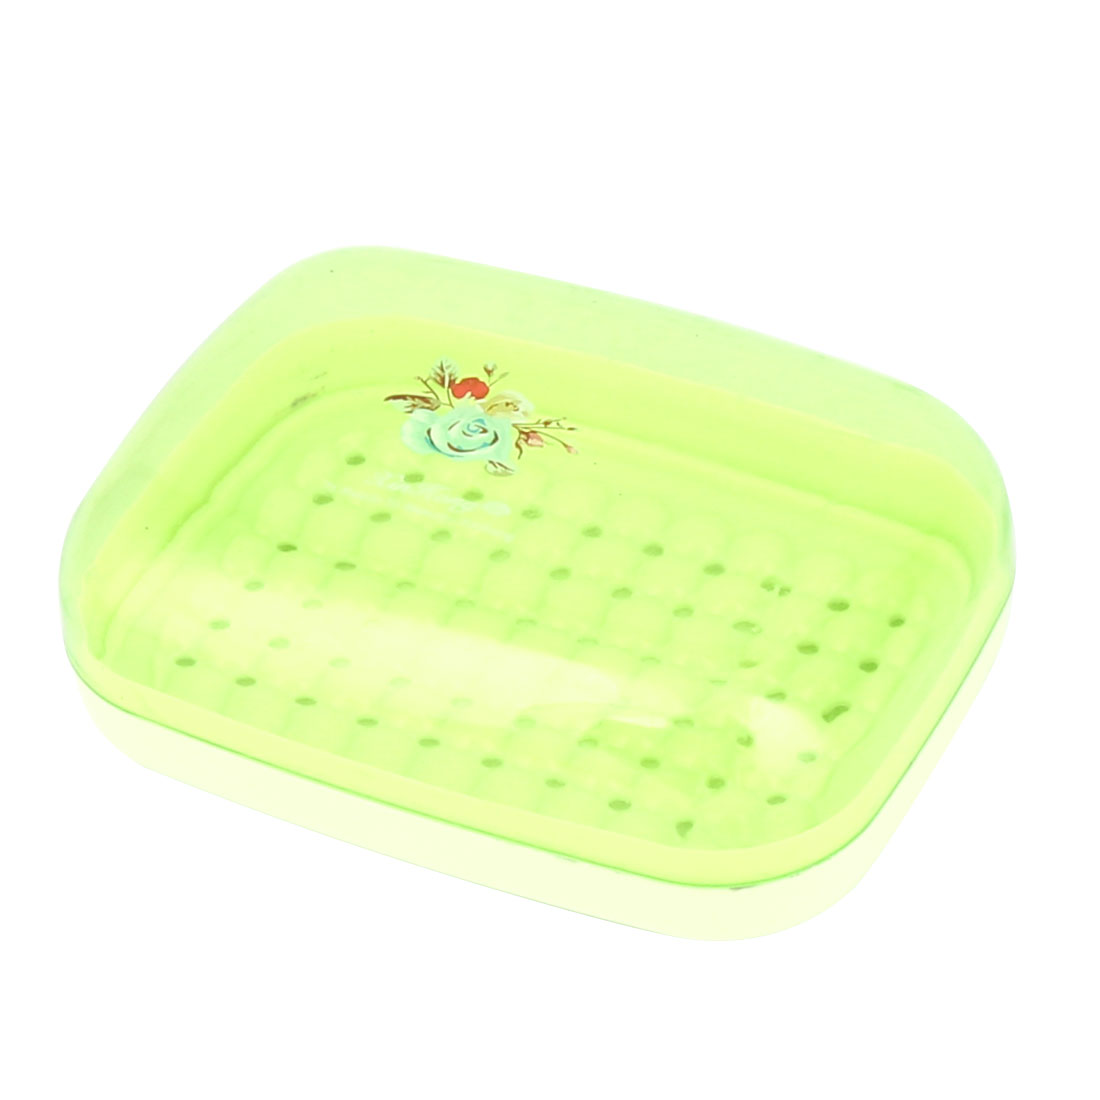 Home Bathroom Hollow Out Base Flower Prints PP Soap Box Holder Case Container Green